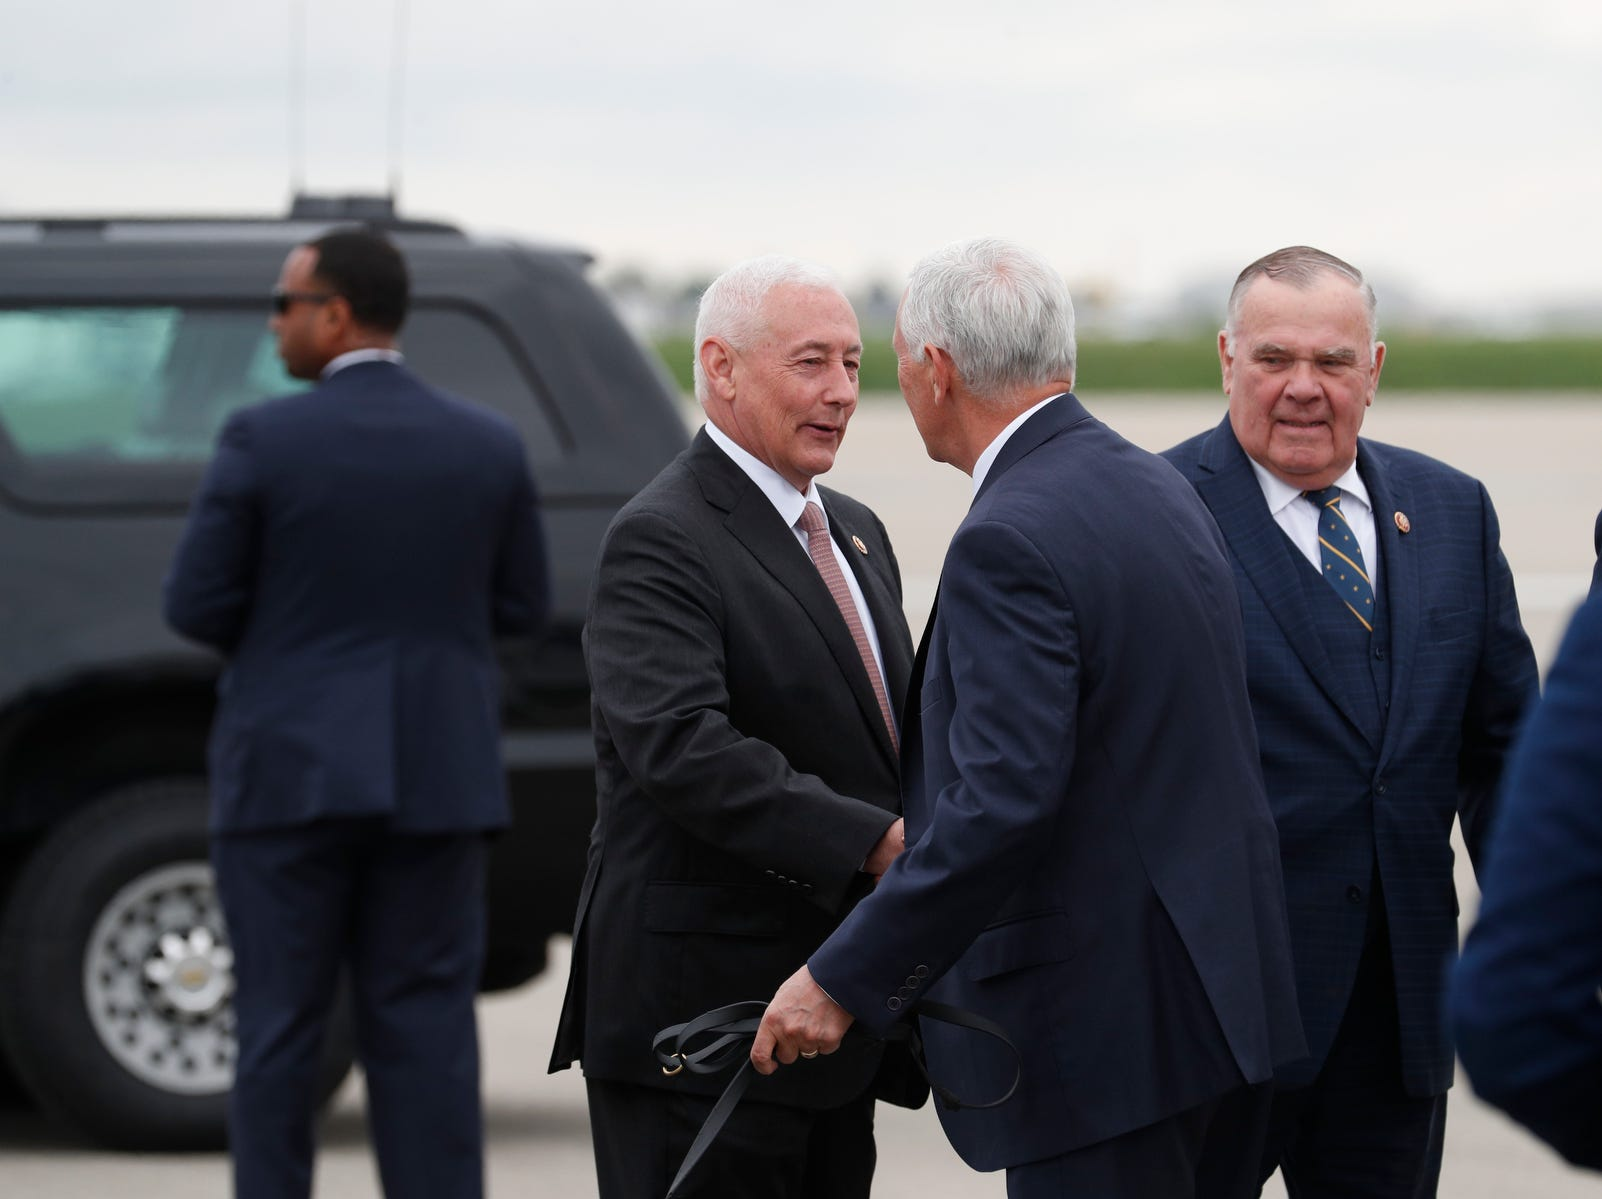 Congressman Greg Pence greets his brother, Vice President Mike Pence at the Indianapolis International Airport on April 26, 2019. Pence will speak at the 2019 NRA-ILA's annual Leadership Forum at Lucas Oil Stadium.